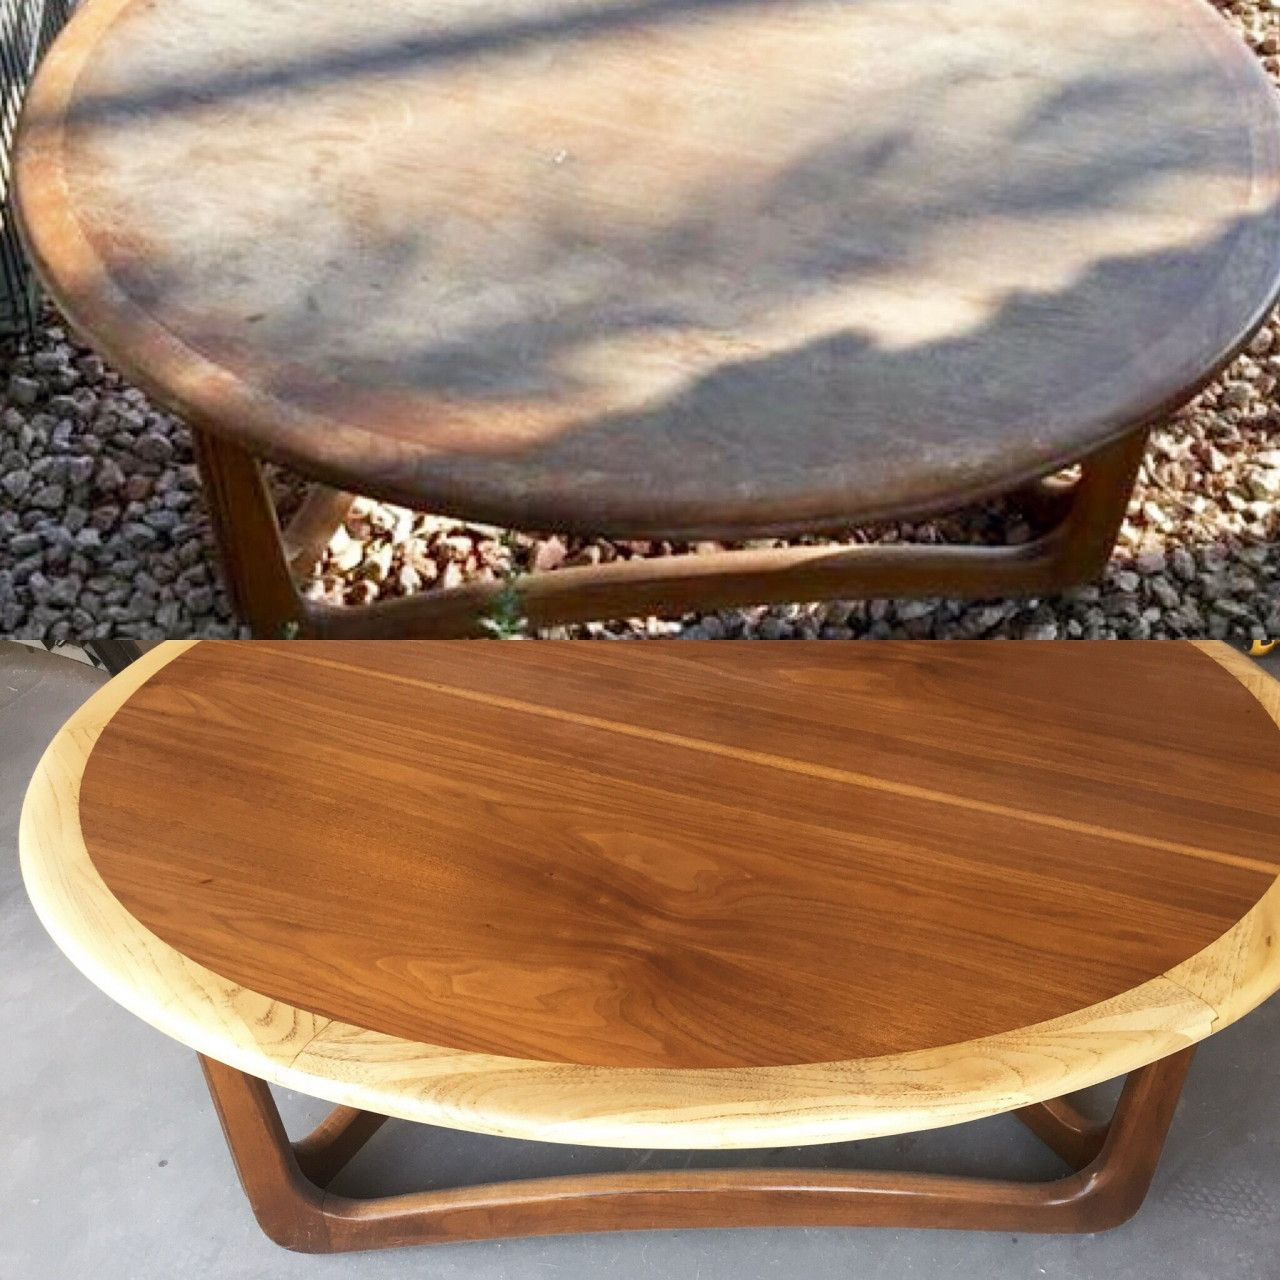 20 Awesome Round Coffee Table Target 2017 Coffee Table Wood Mid Century Coffee Table Round Coffee Table [ 1280 x 1280 Pixel ]